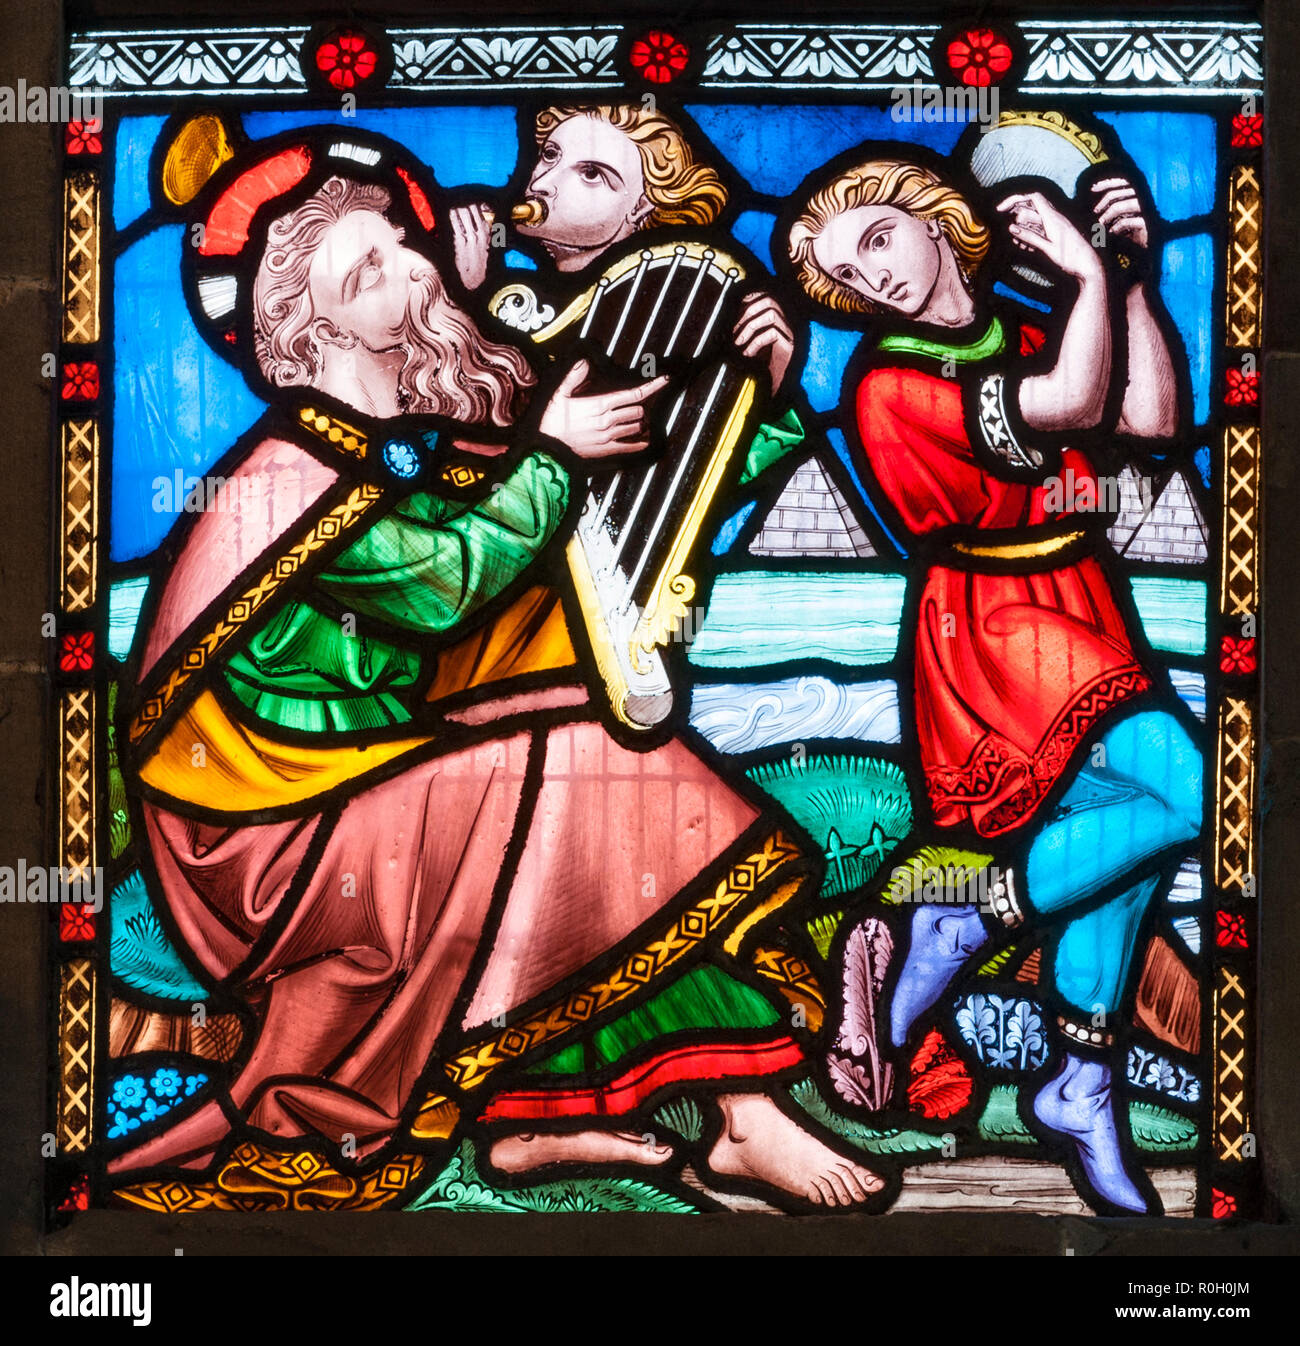 Hereford Cathedral, UK. Stained glass window showing King David playing the harp, with other musicians - Stock Image